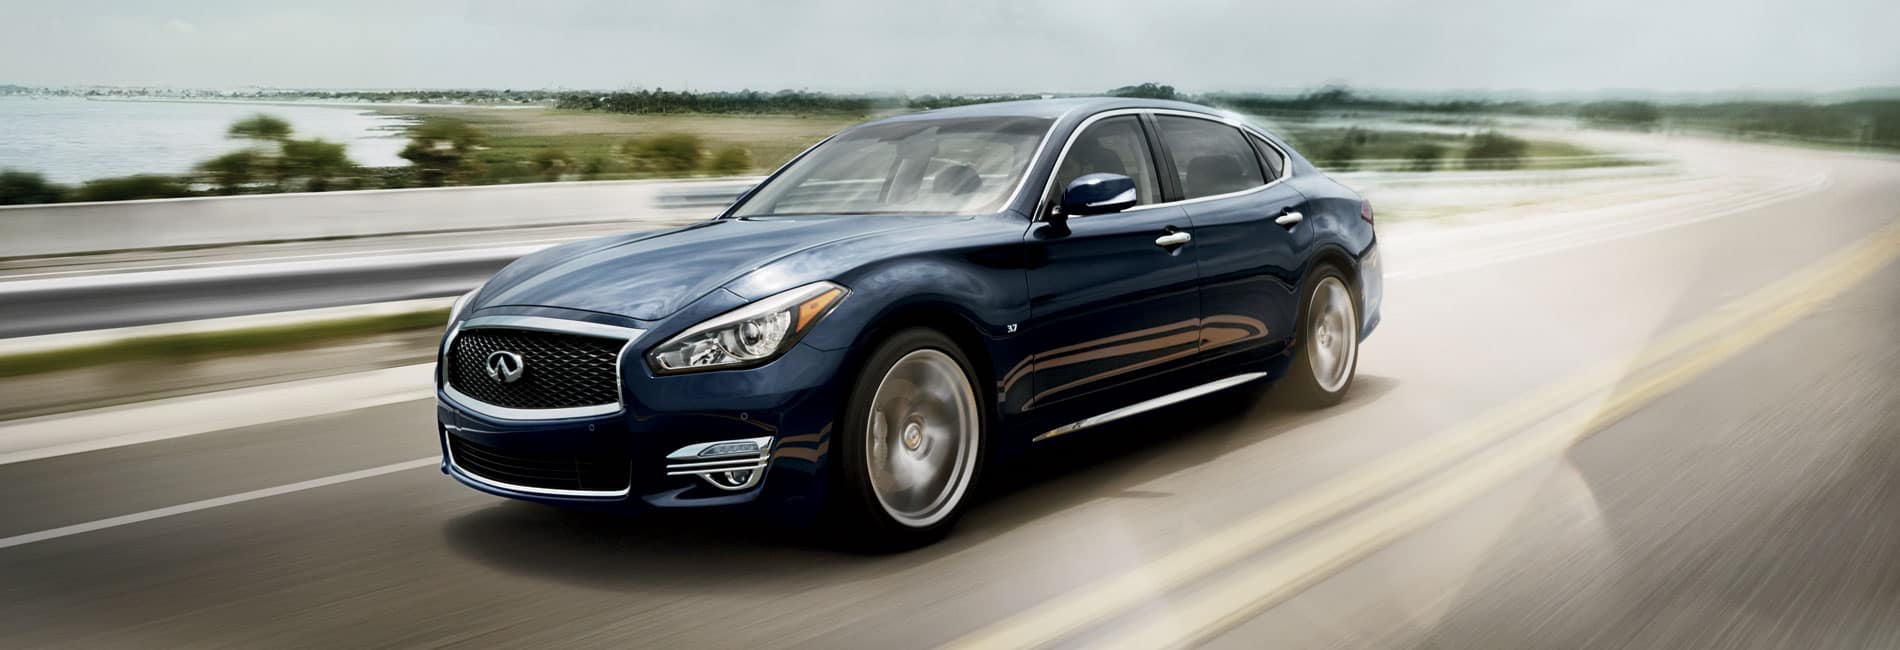 2019 INFINITI Q70L for Sale in Chicago, IL